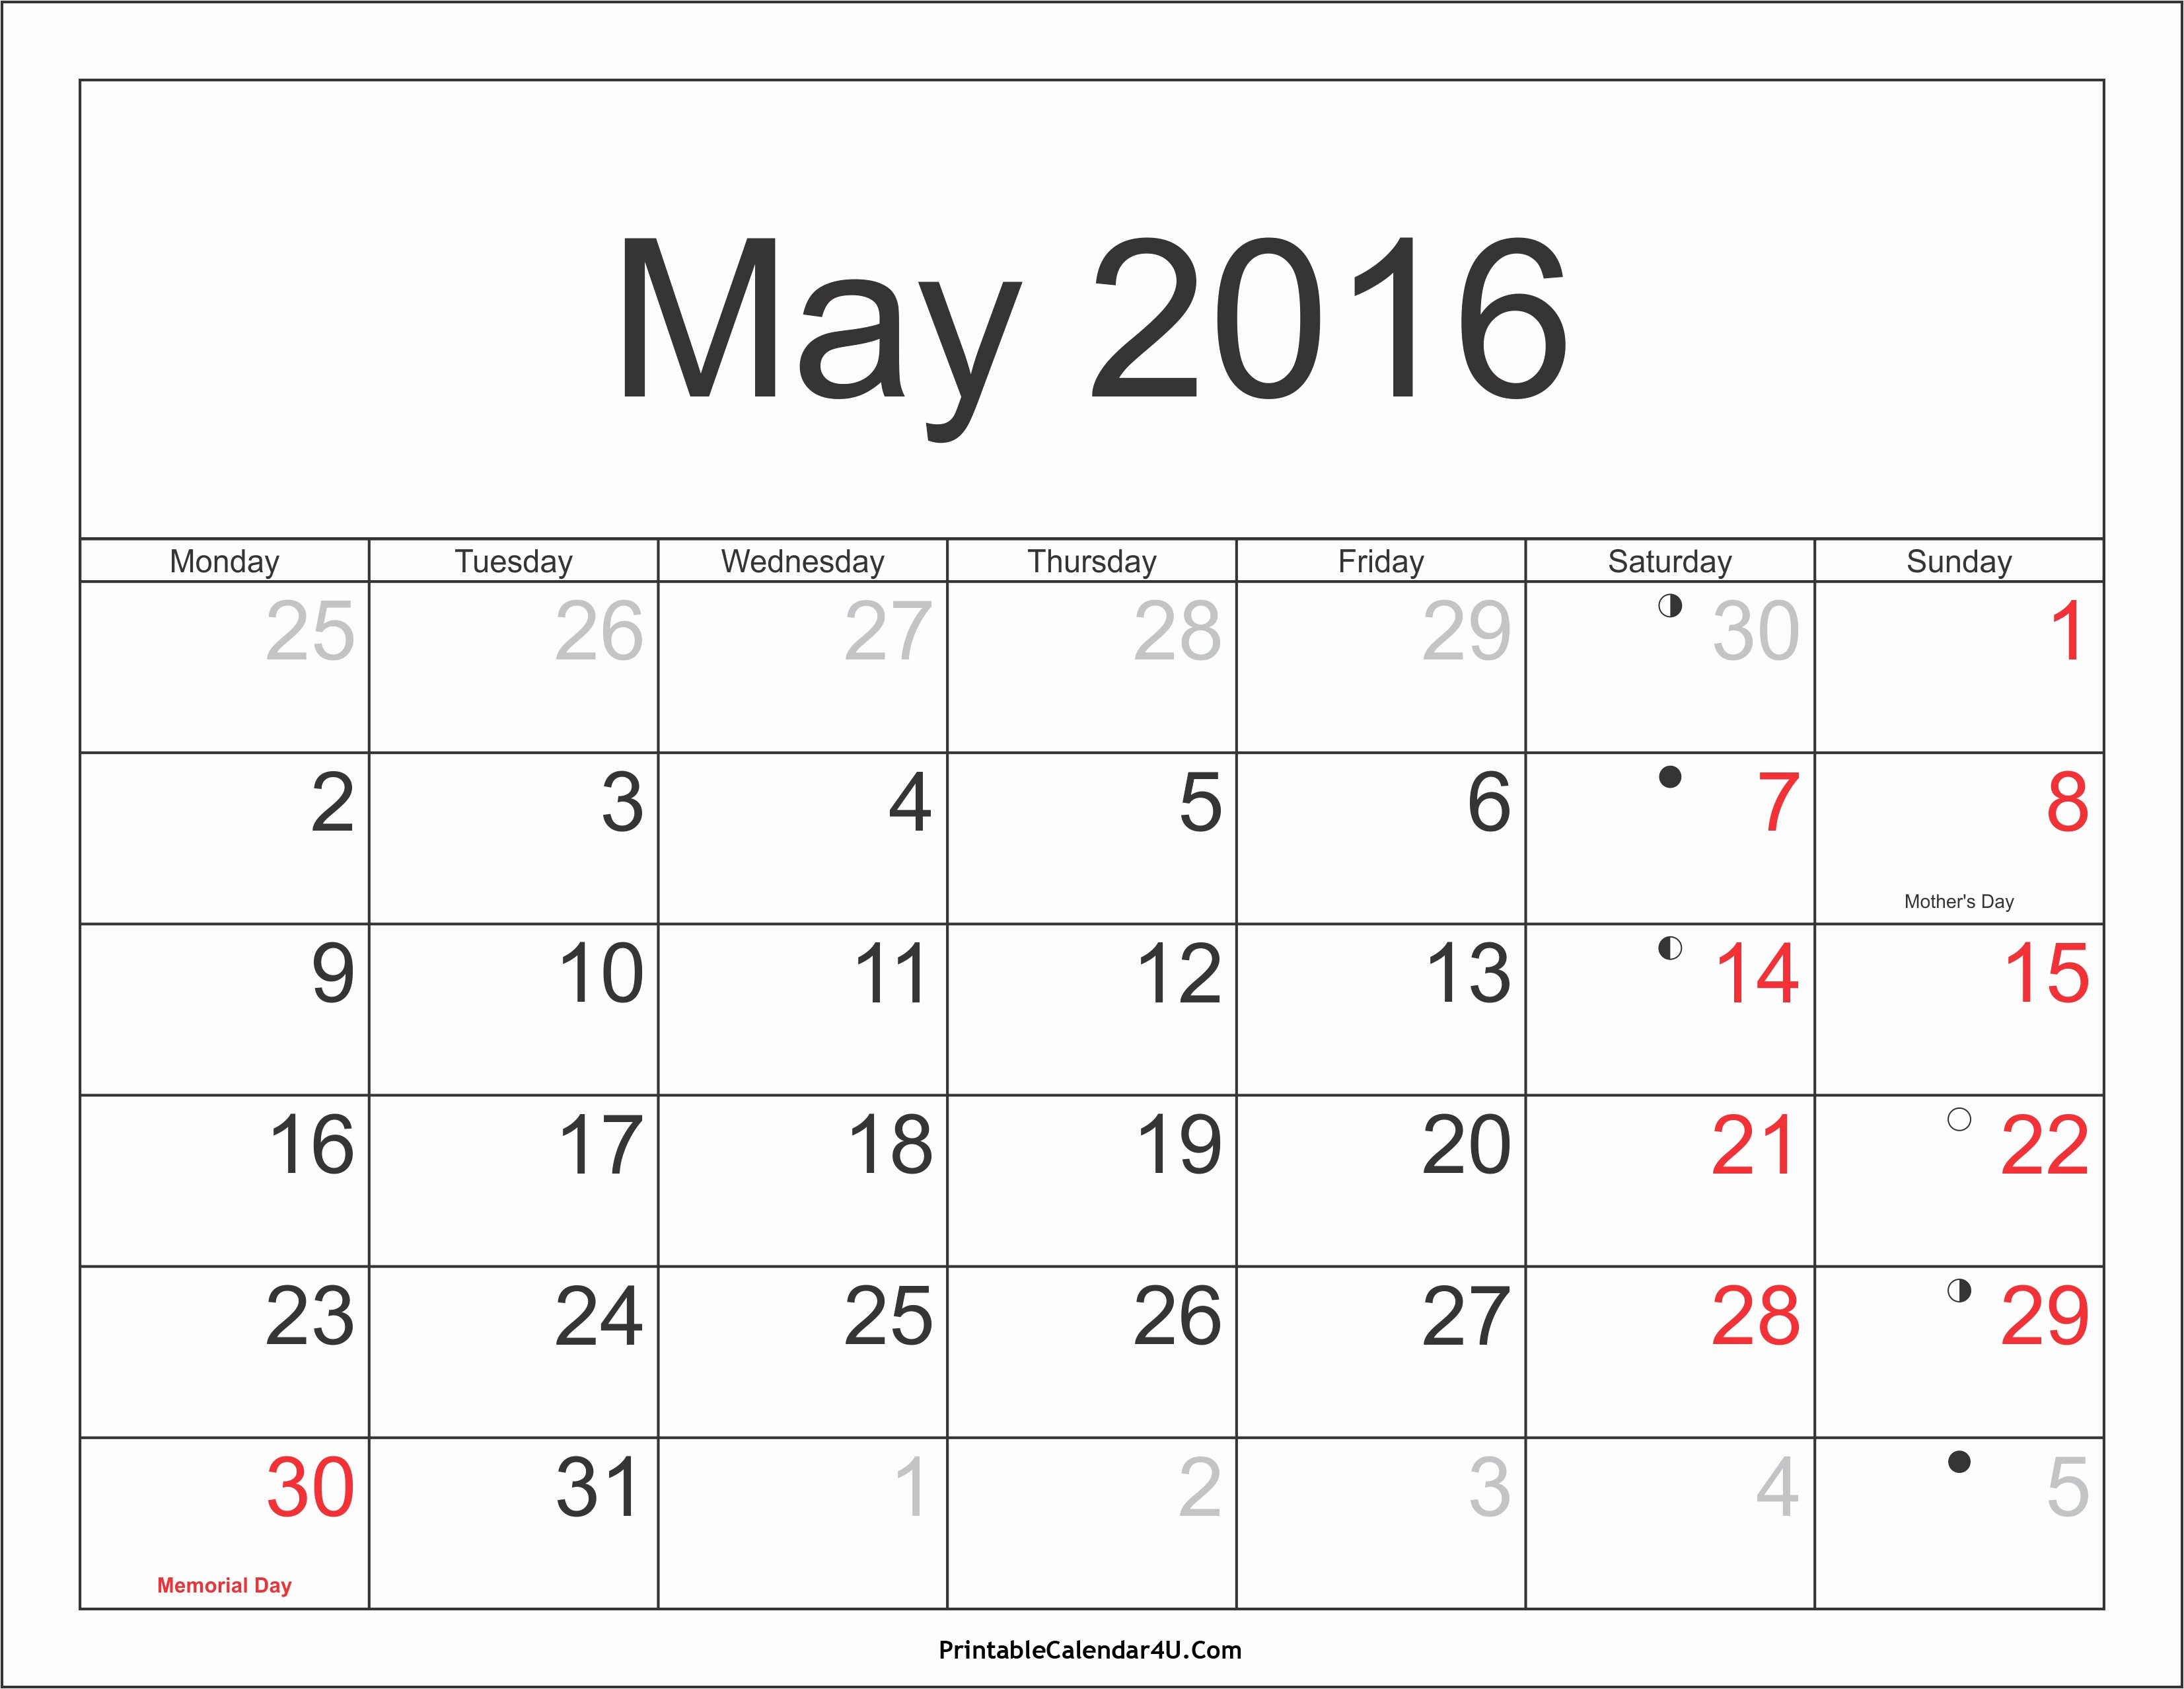 Printable 2016 Calendars with Holidays Unique May 2016 Calendar Printable with Holidays Pdf and Jpg